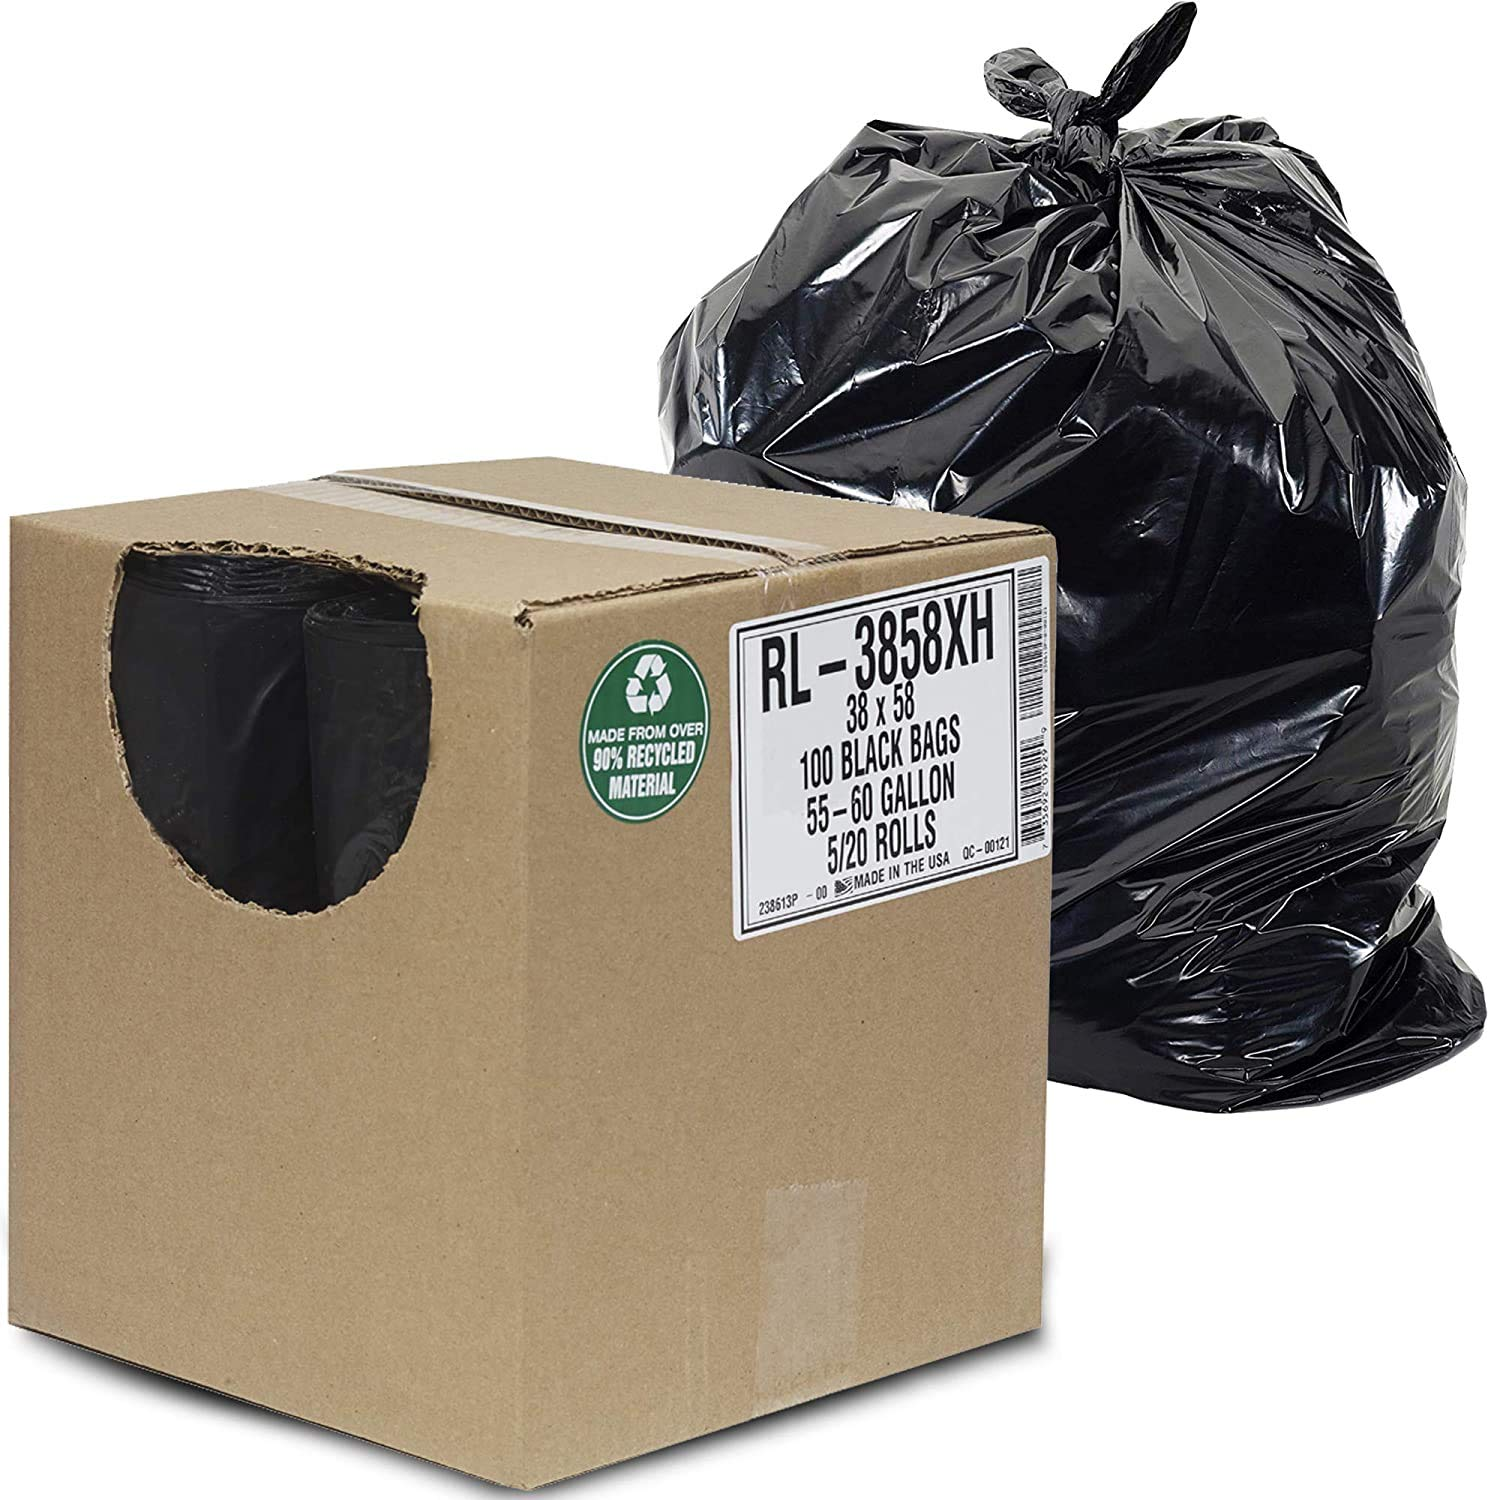 """Aluf Plastics - RL-3858XH 55 Gallon Trash Can Liners (100 Count) - 38"""" x 58"""" - Thick 1.5 MIL Equivalent Black Trash Bags for Bathroom, Kitchen, Office, Industrial, Commercial, Recycling and More"""